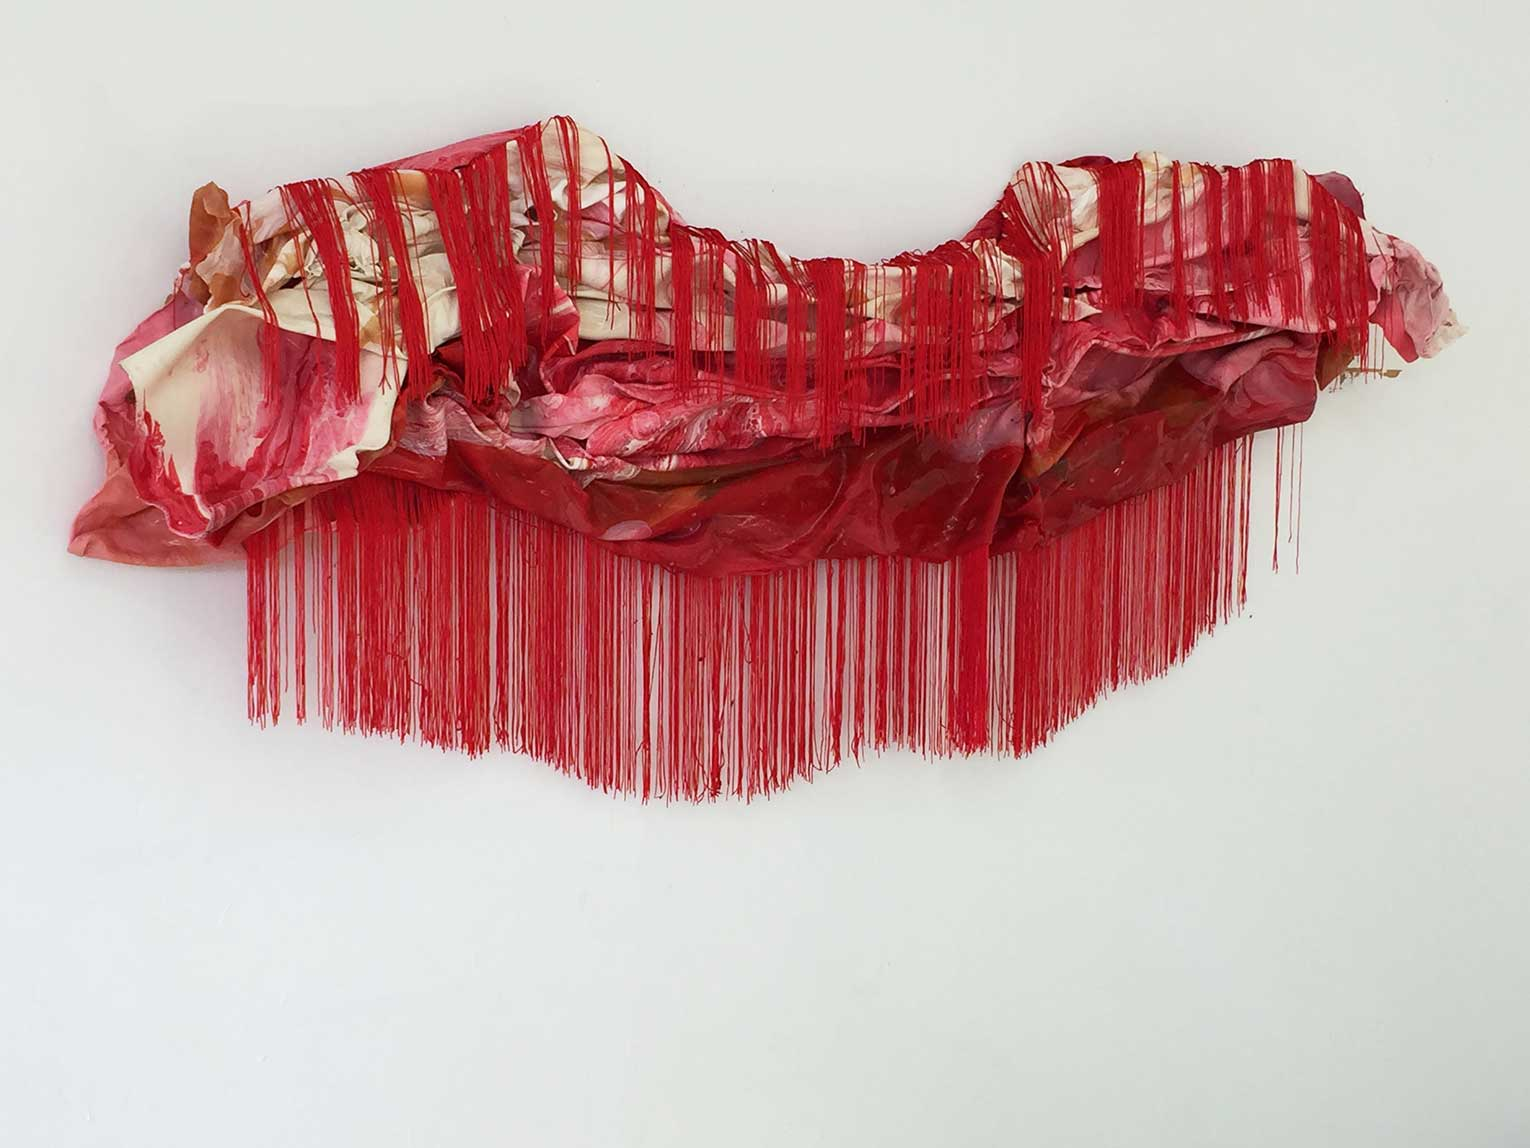 <b>Title:&nbsp;</b>Prolapse<br /><b>Year:&nbsp;</b>2018<br /><b>Medium:&nbsp;</b>Marbled latex, polyester fringing<br /><b>Size:&nbsp;</b>240 x 40 cm